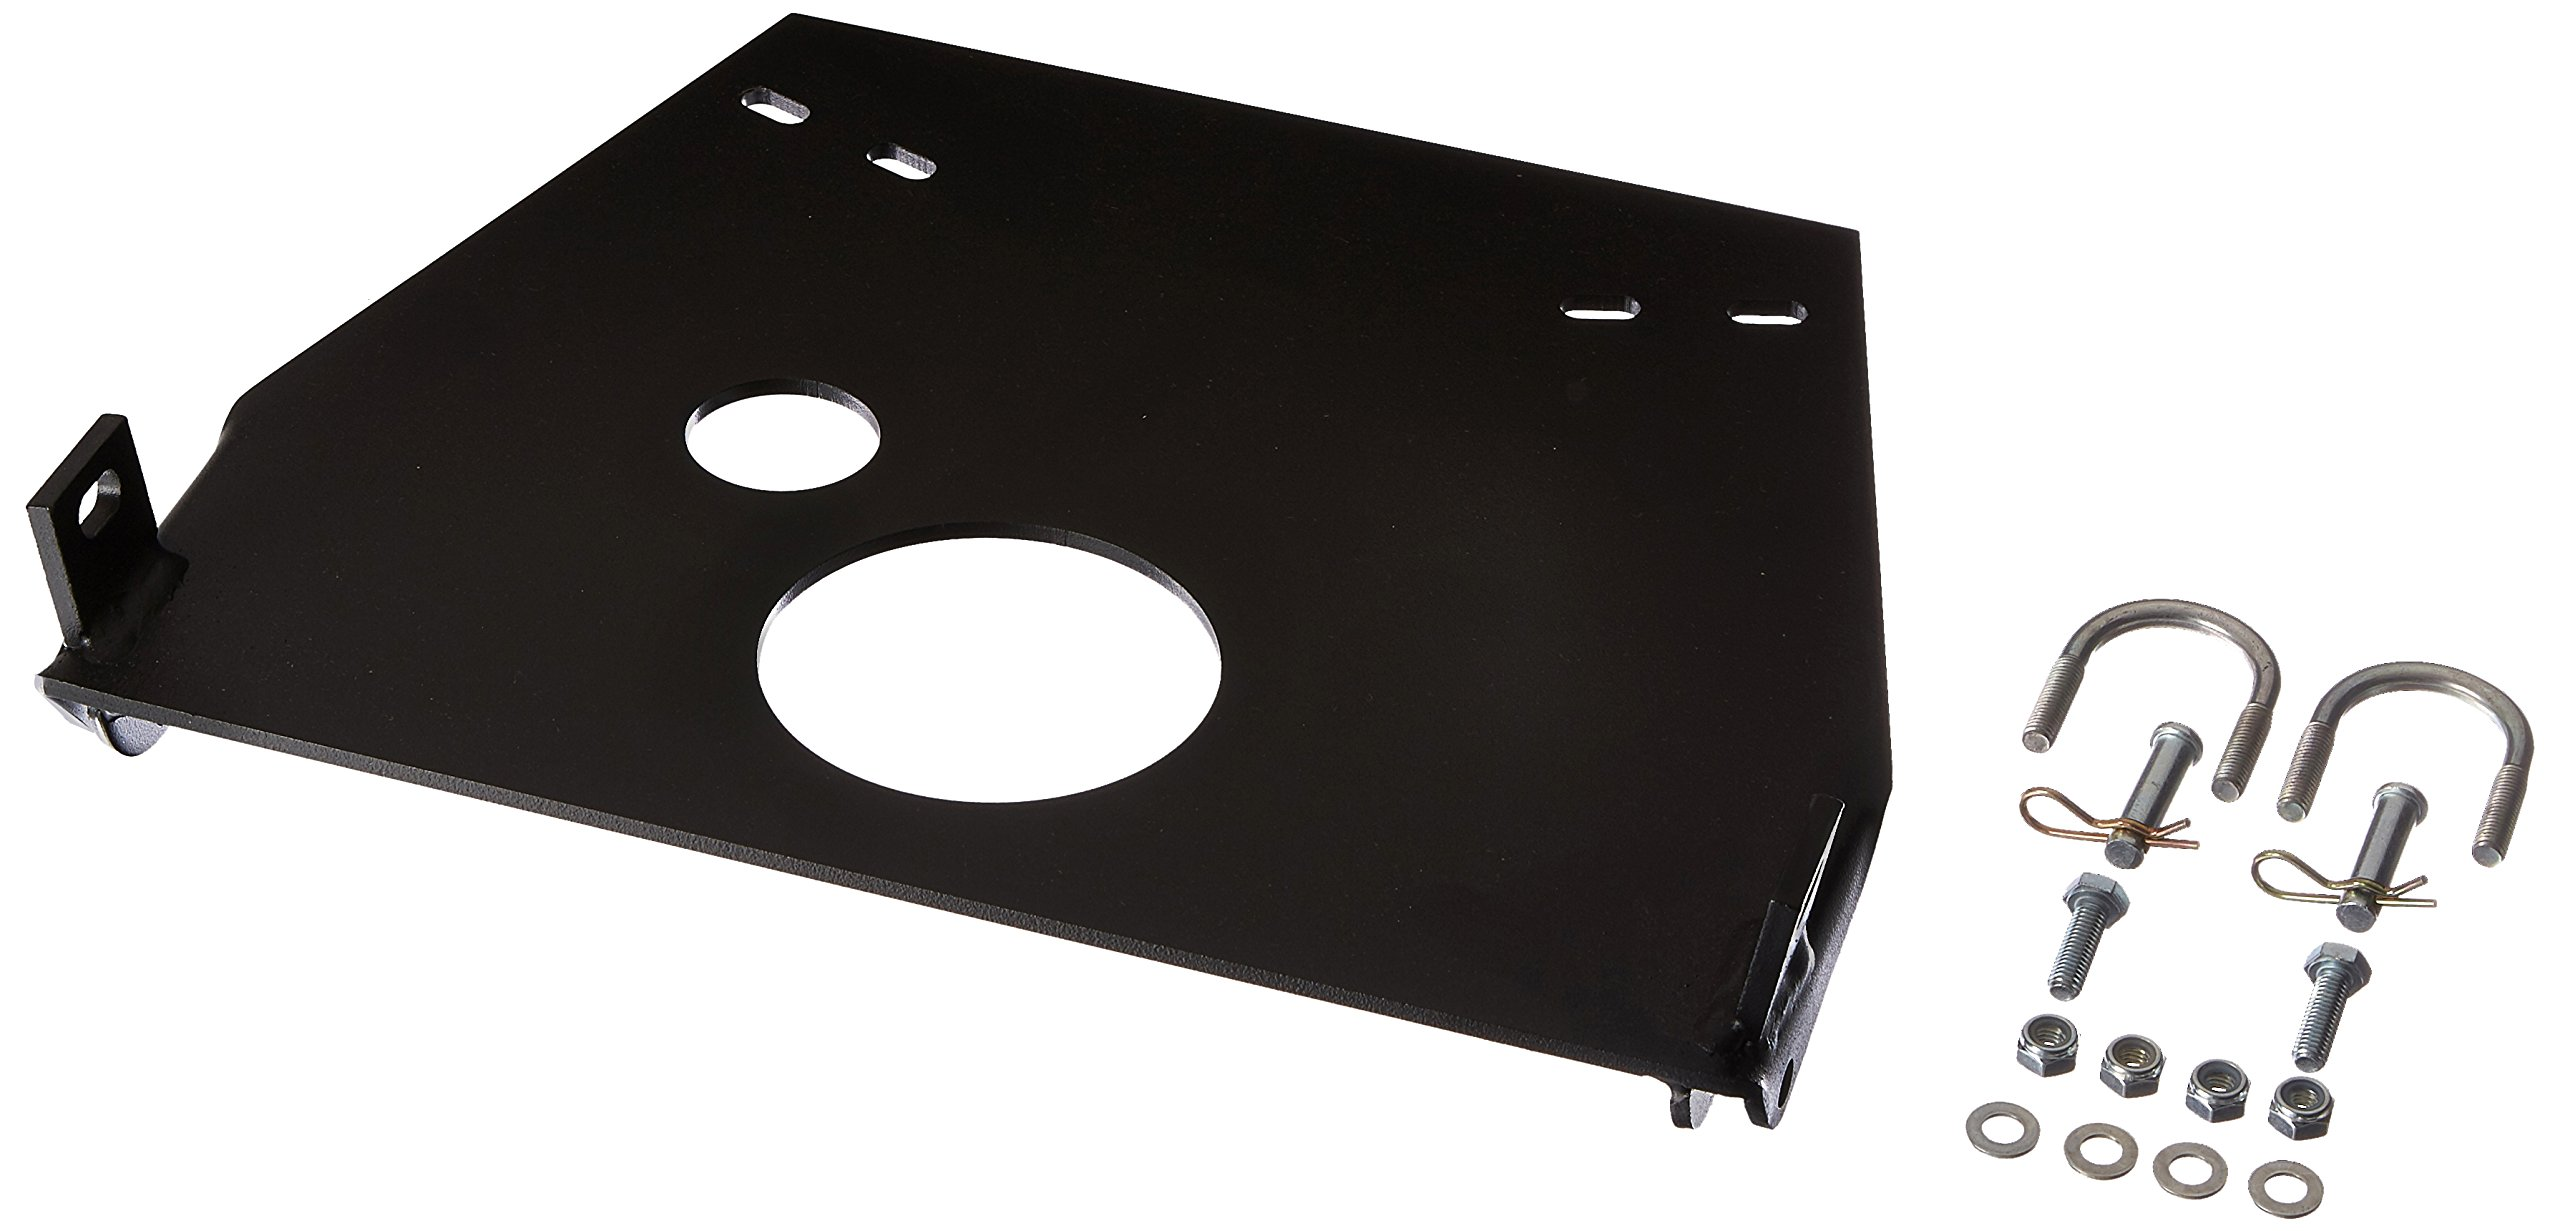 ATV Plow-Polaris 335//400 Kolpin 15-3550 Mount Kit